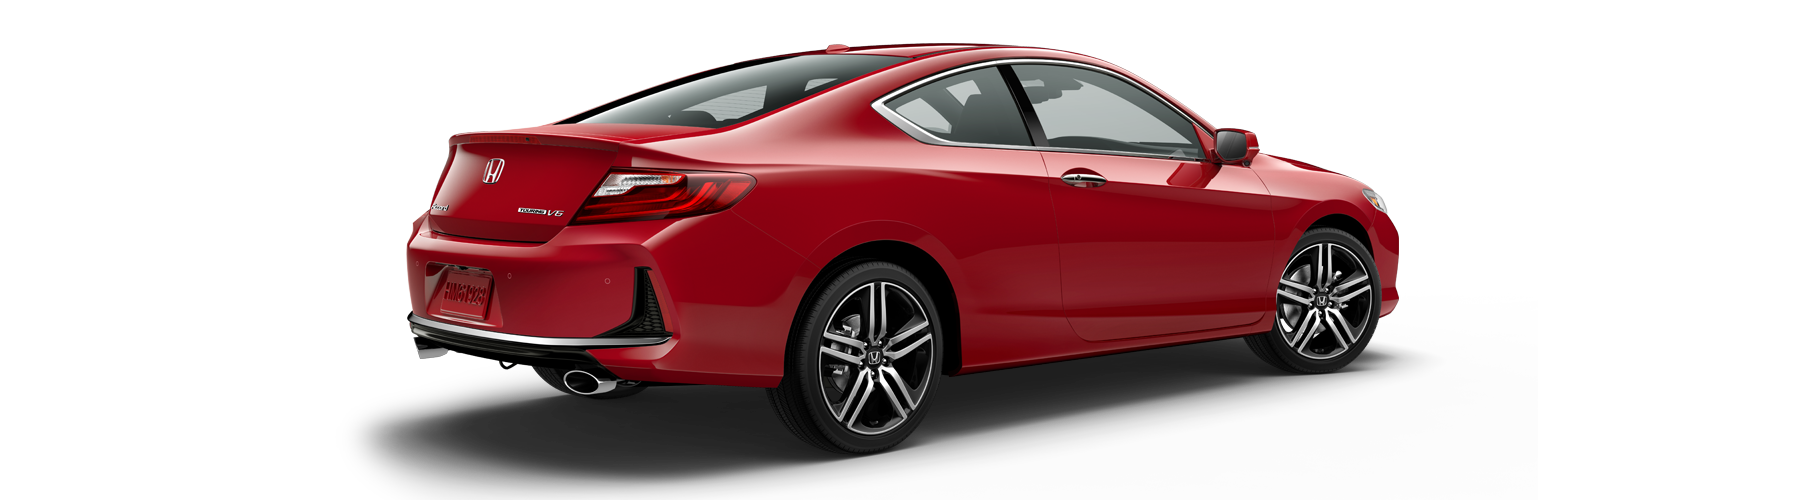 2017 Honda Accord Coupe Rear Angle